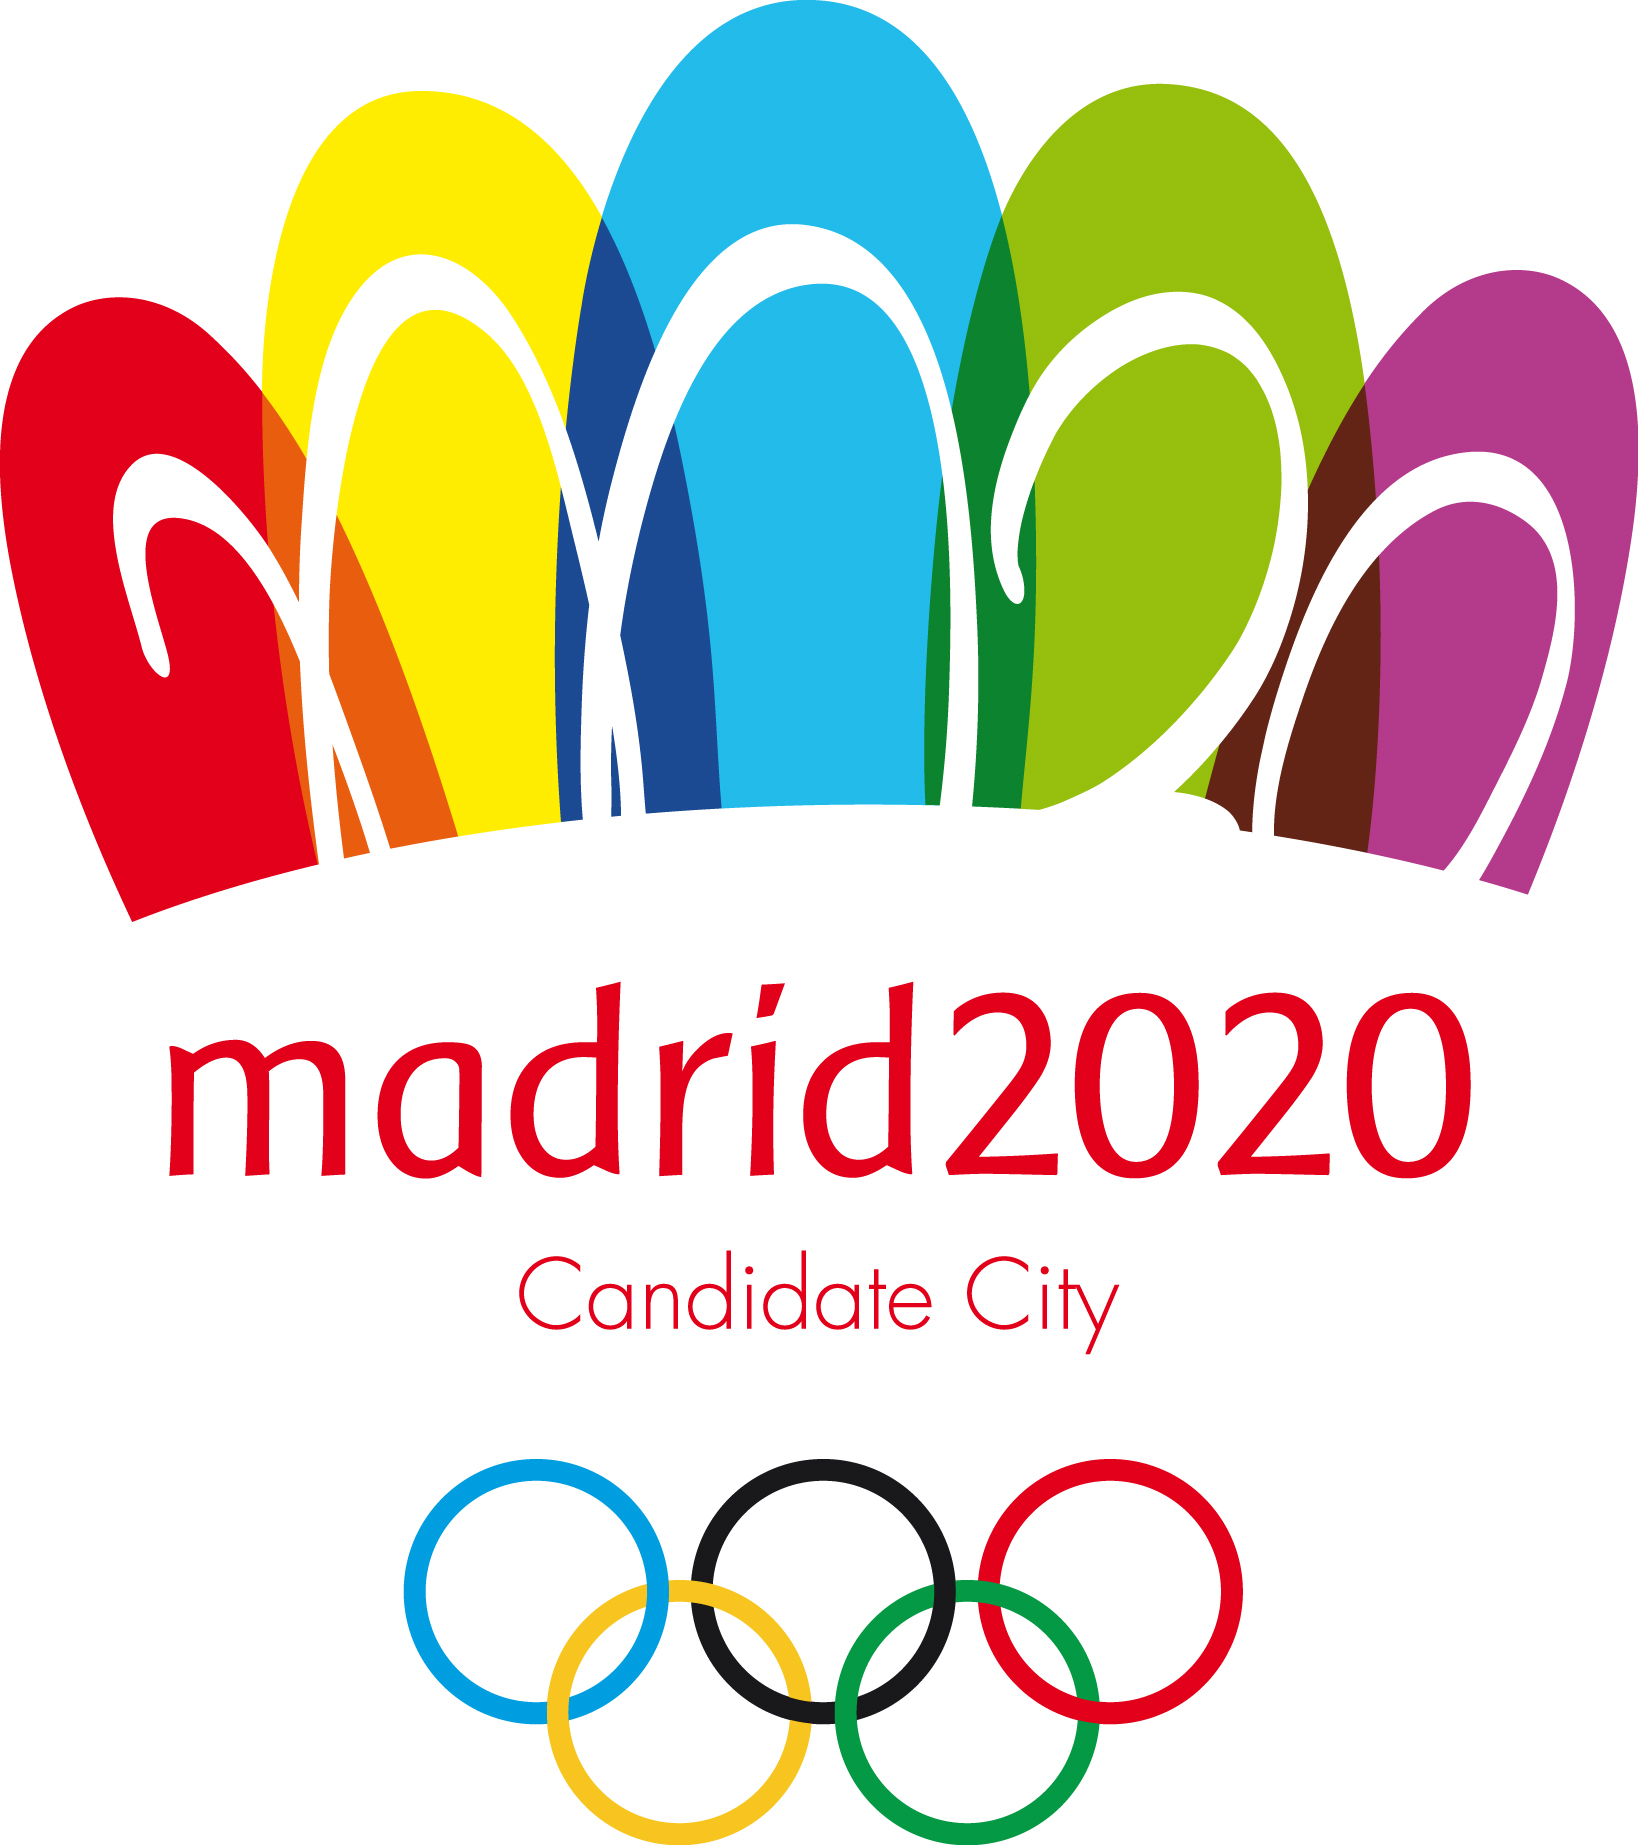 Madrd 2020_updated_logo